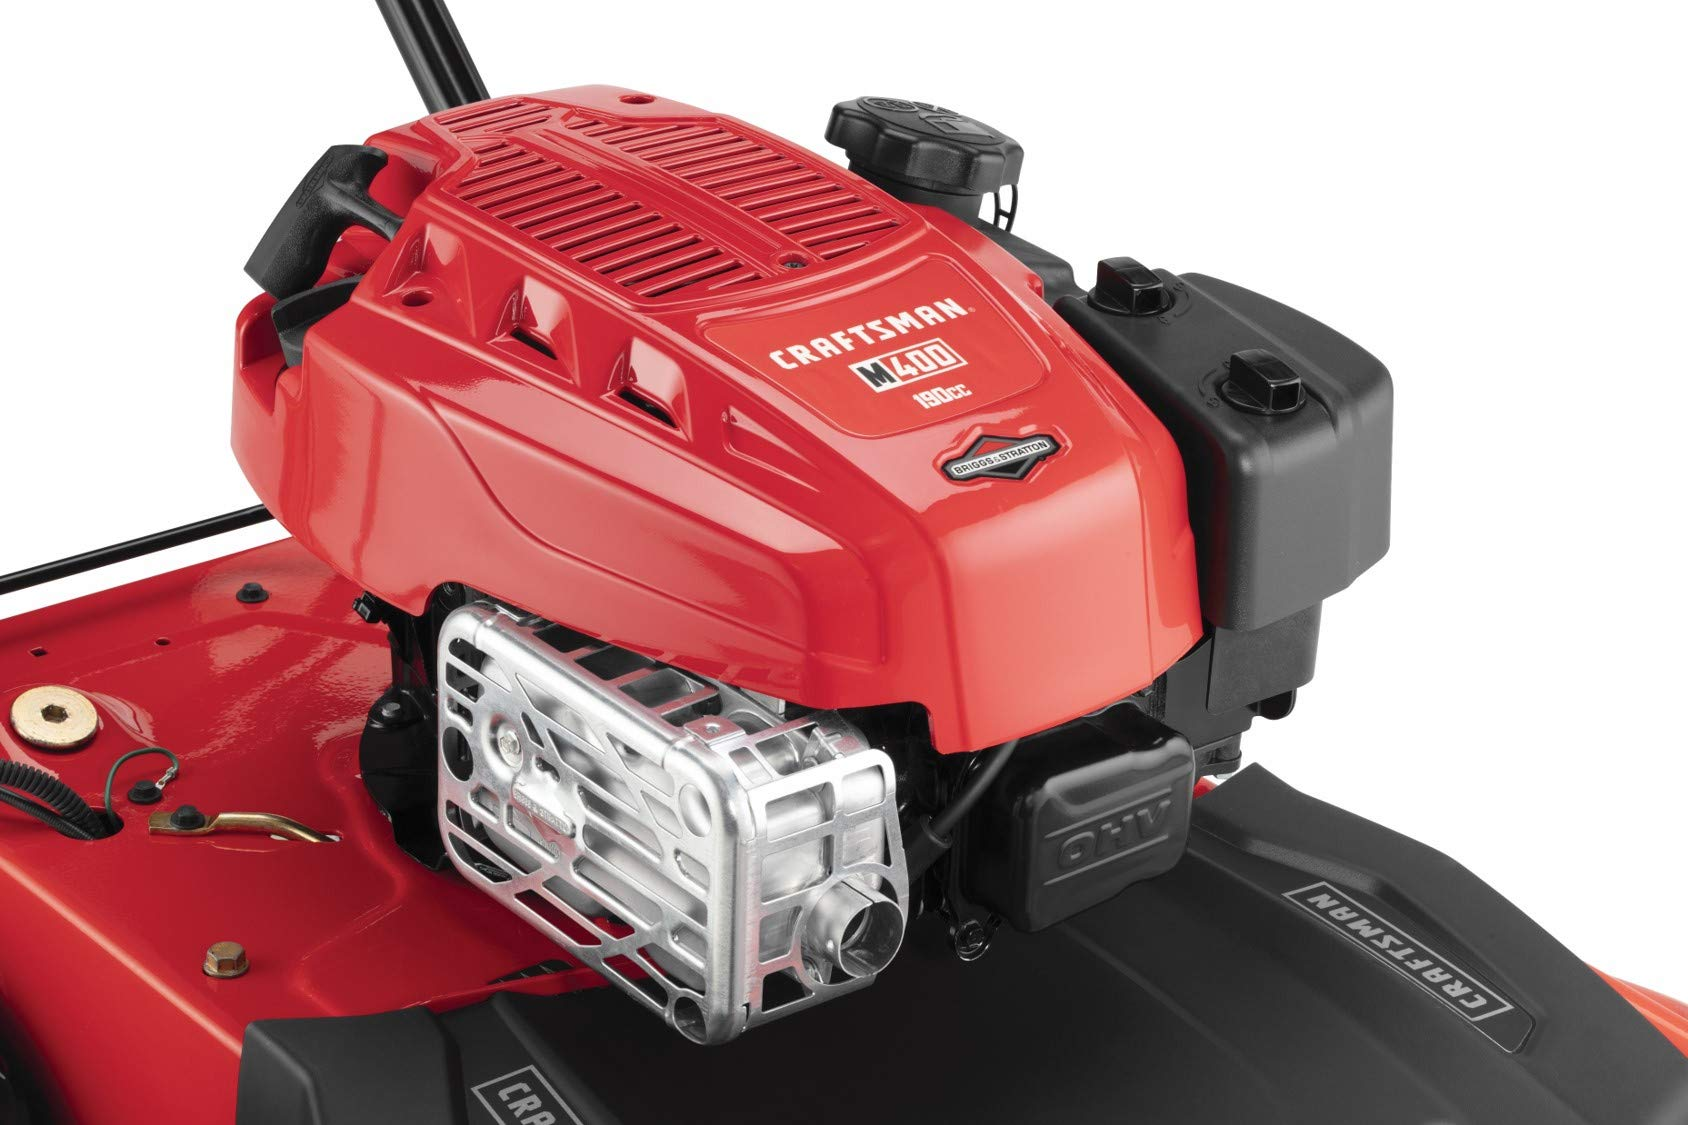 Craftsman M410 190cc Briggs & Stratton 875 Professional Series 28-Inch 2-in-1 Self-Propelled RWD Gas Powered Lawn Mower 2 POWERFUL 190CC OHV GAS ENGINE: Powerful Briggs & Stratton engine equipped with recoil and ready start-just pull to start! 2-IN-1 CAPABILITIES: Unit can mulch and side discharge. REAR WHEEL DRIVE: Provides more traction and the ability to operate over hilly terrain.